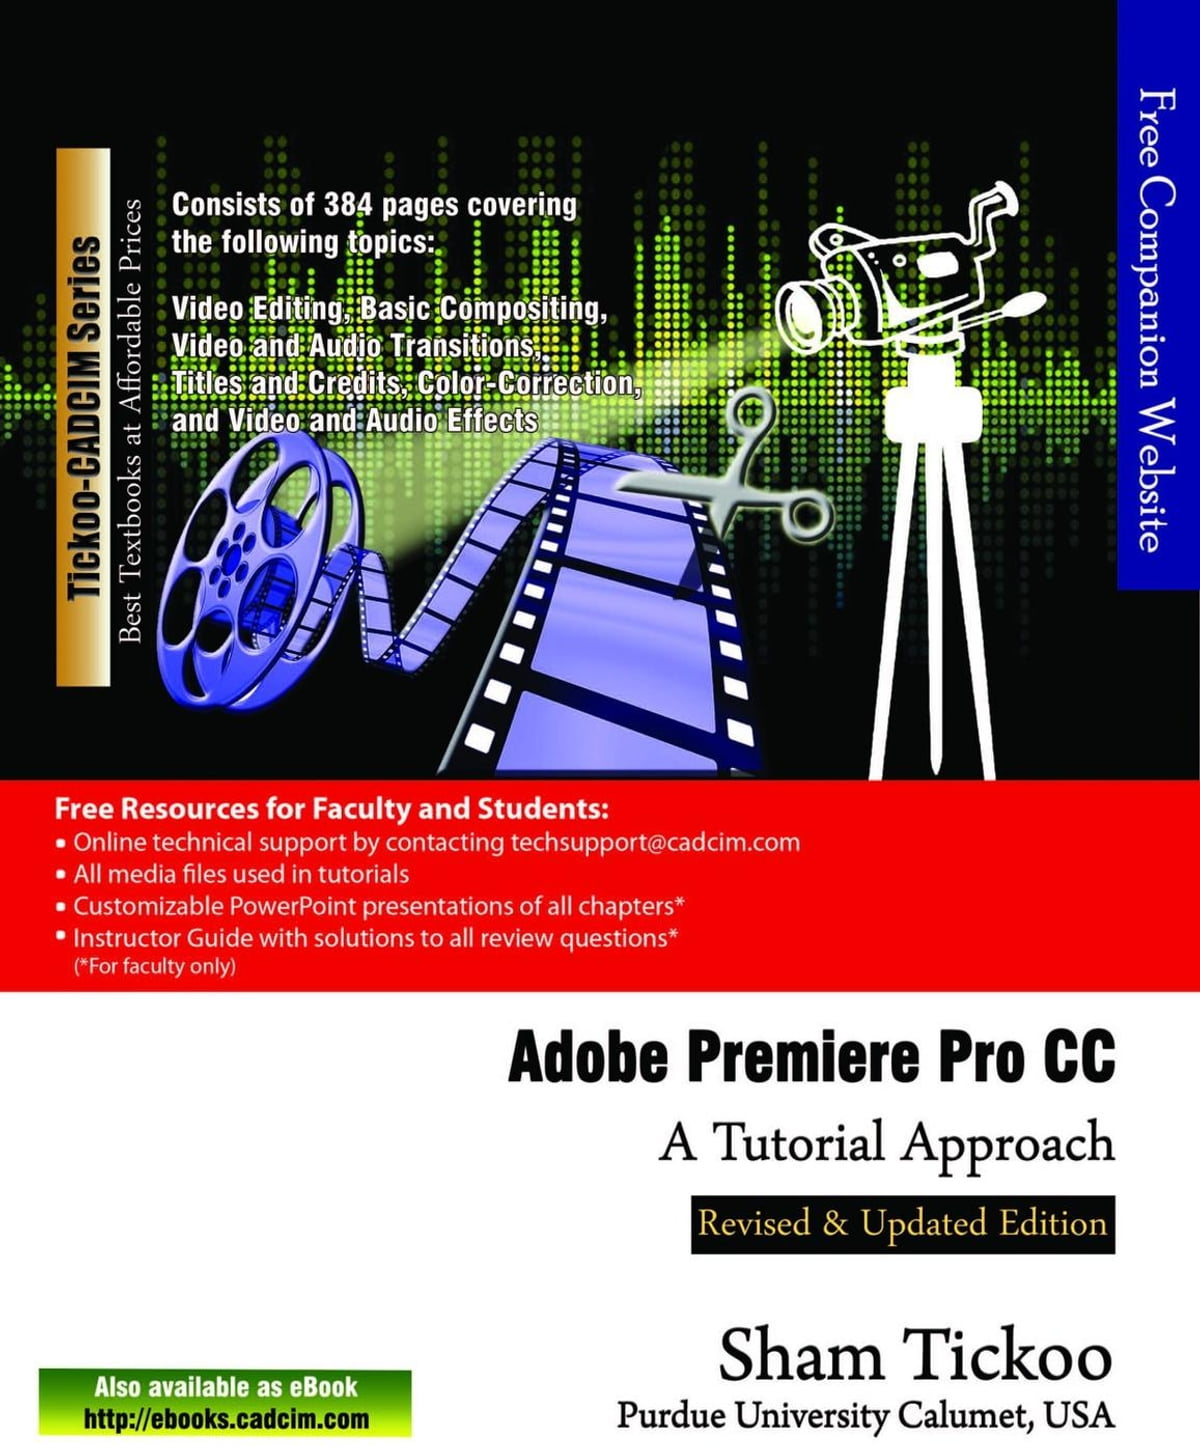 Adobe premiere pro cc a tutorial approach ebook by prof sham adobe premiere pro cc a tutorial approach ebook by prof sham tickoo 9781386744528 rakuten kobo baditri Choice Image